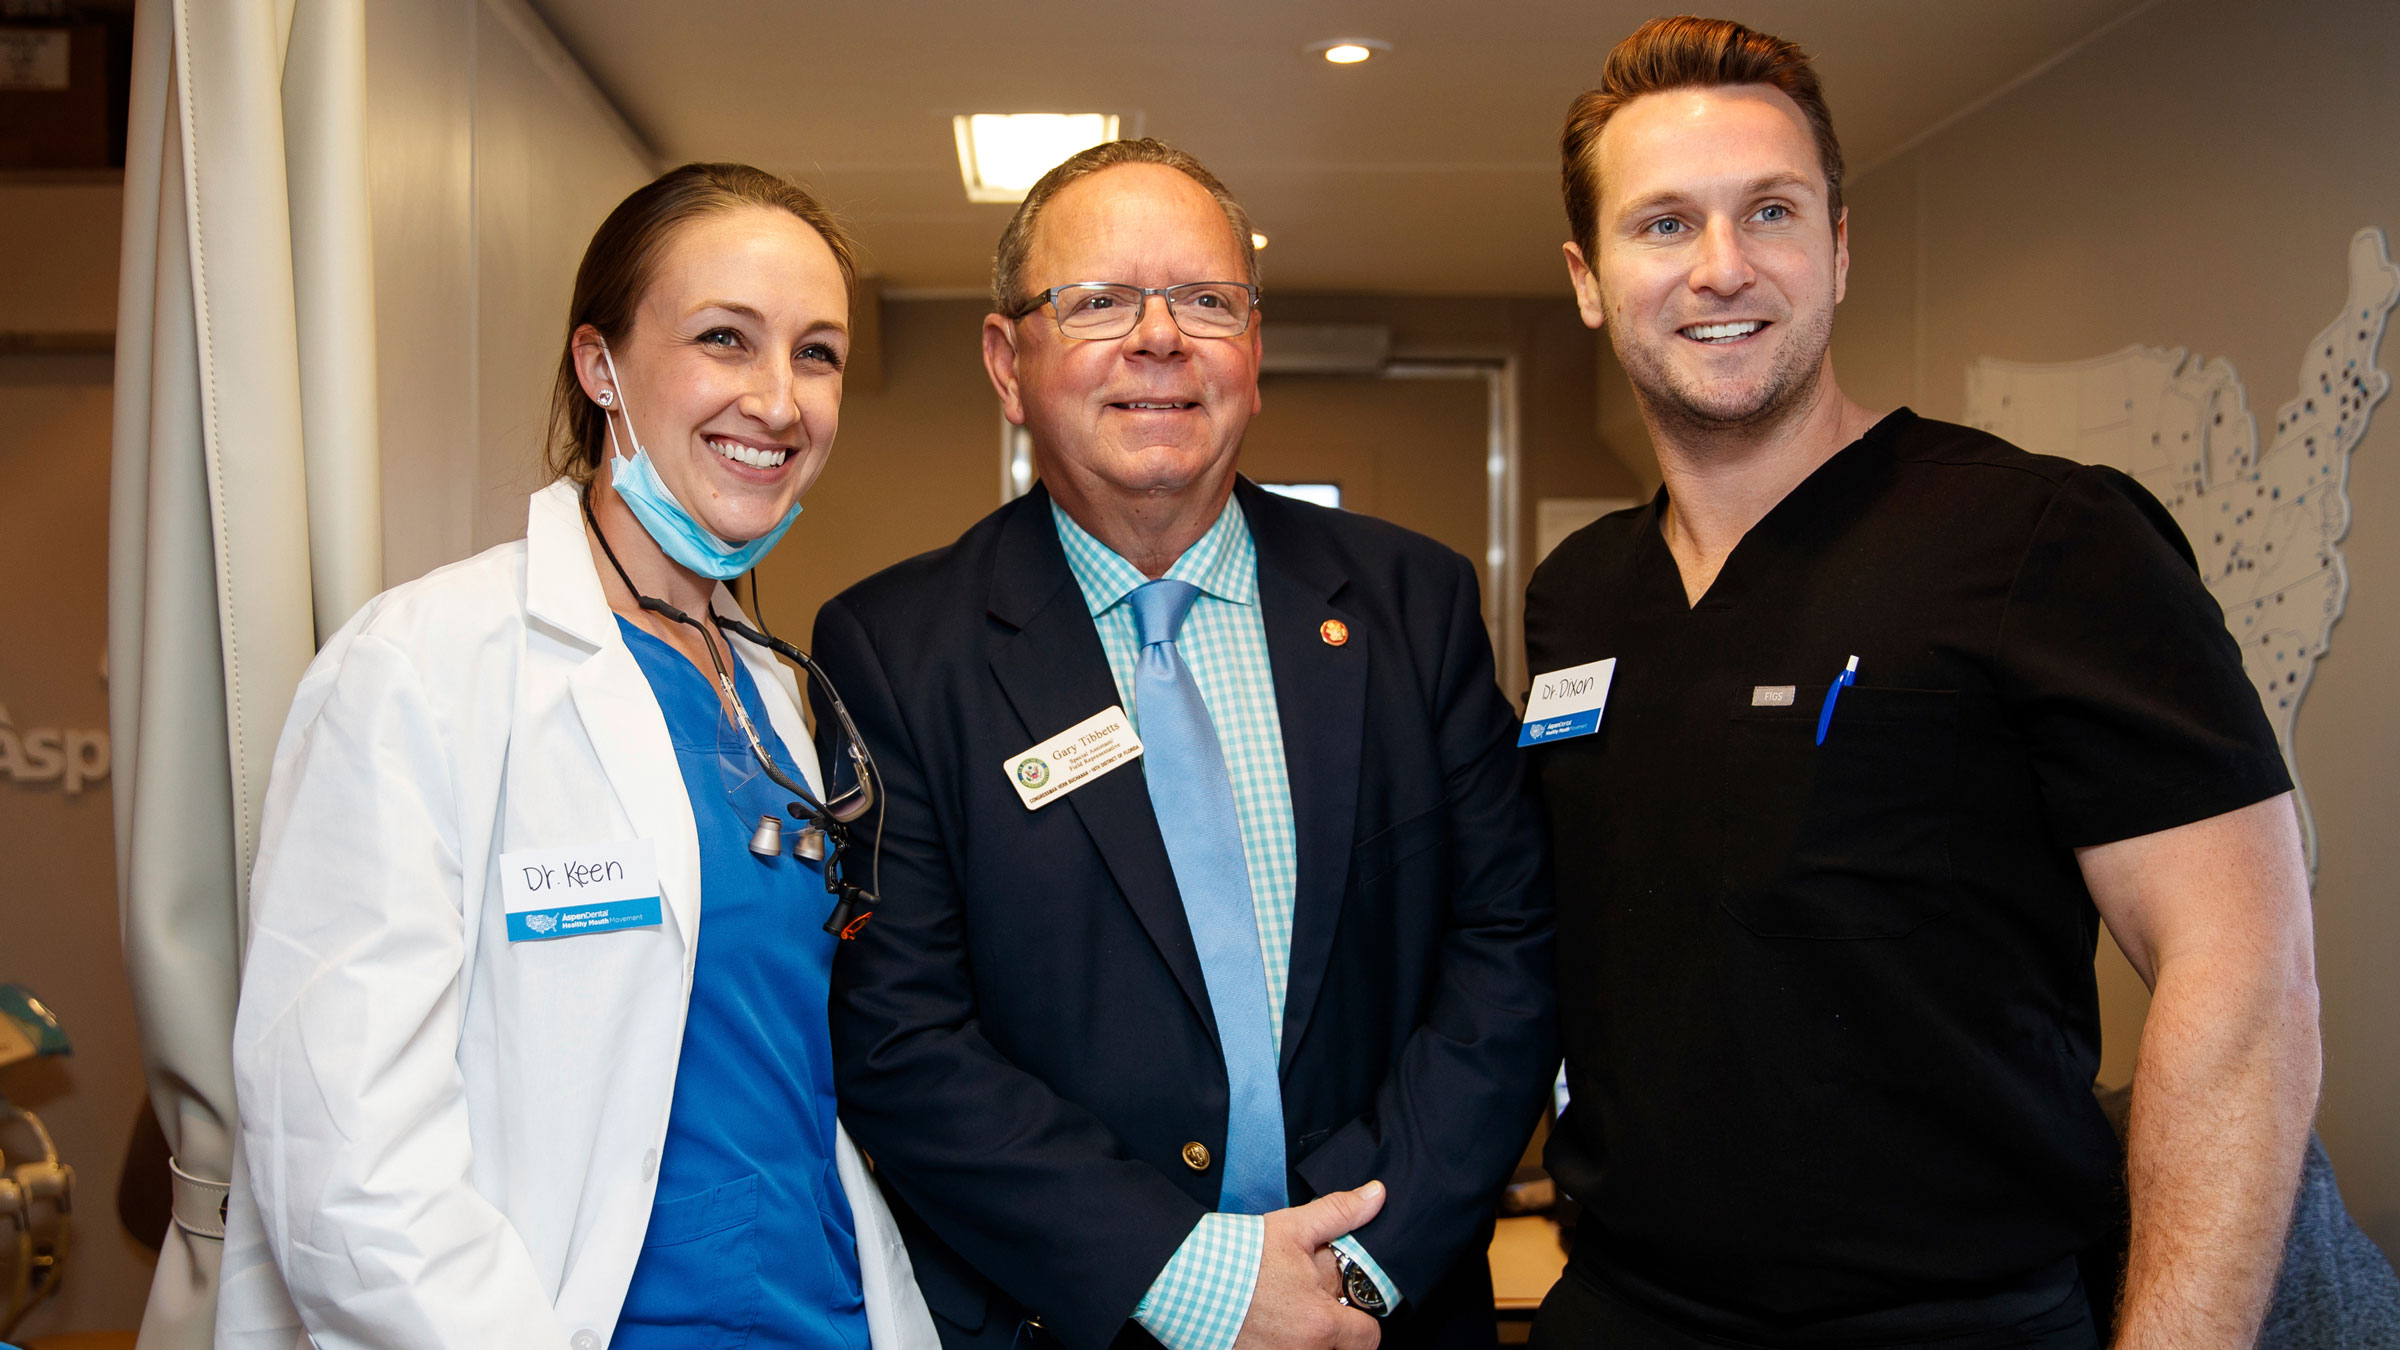 Gary Tibbetts, center, visits a mobile dental office in Bradenton, Florida, in March 2019.